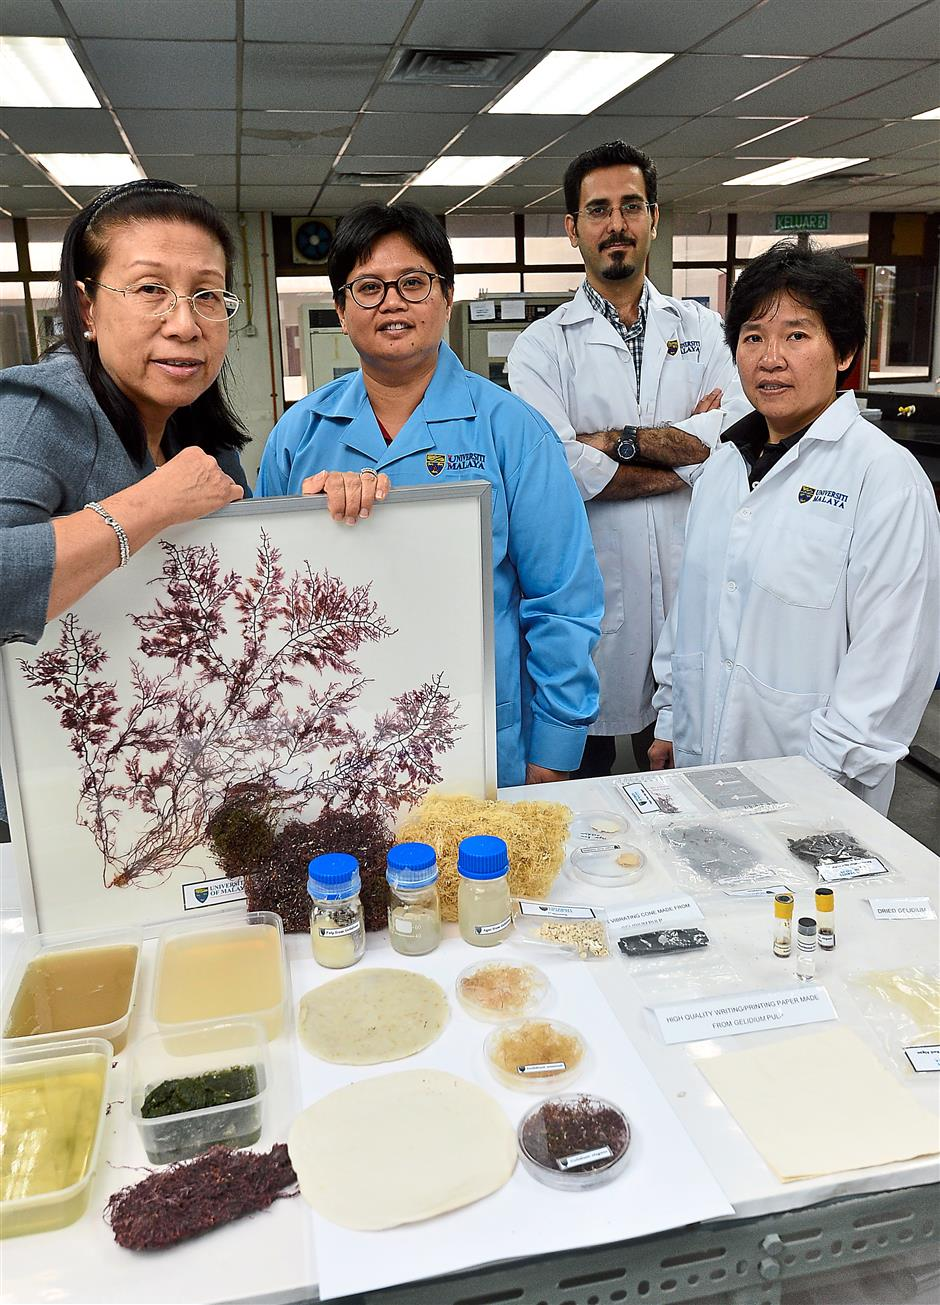 Studying seaweeds: Universiti Malaya's team that researched how red seaweed could be turned into pulp to make paper and bioethanol, (from left) Prof Dr Phang Siew Moi, Assoc Prof Lim Phaik Eem, PhD student Mohd J. Hessami and Dr Yeong Hui Yin. (Right) The different types of gelidium seaweed.